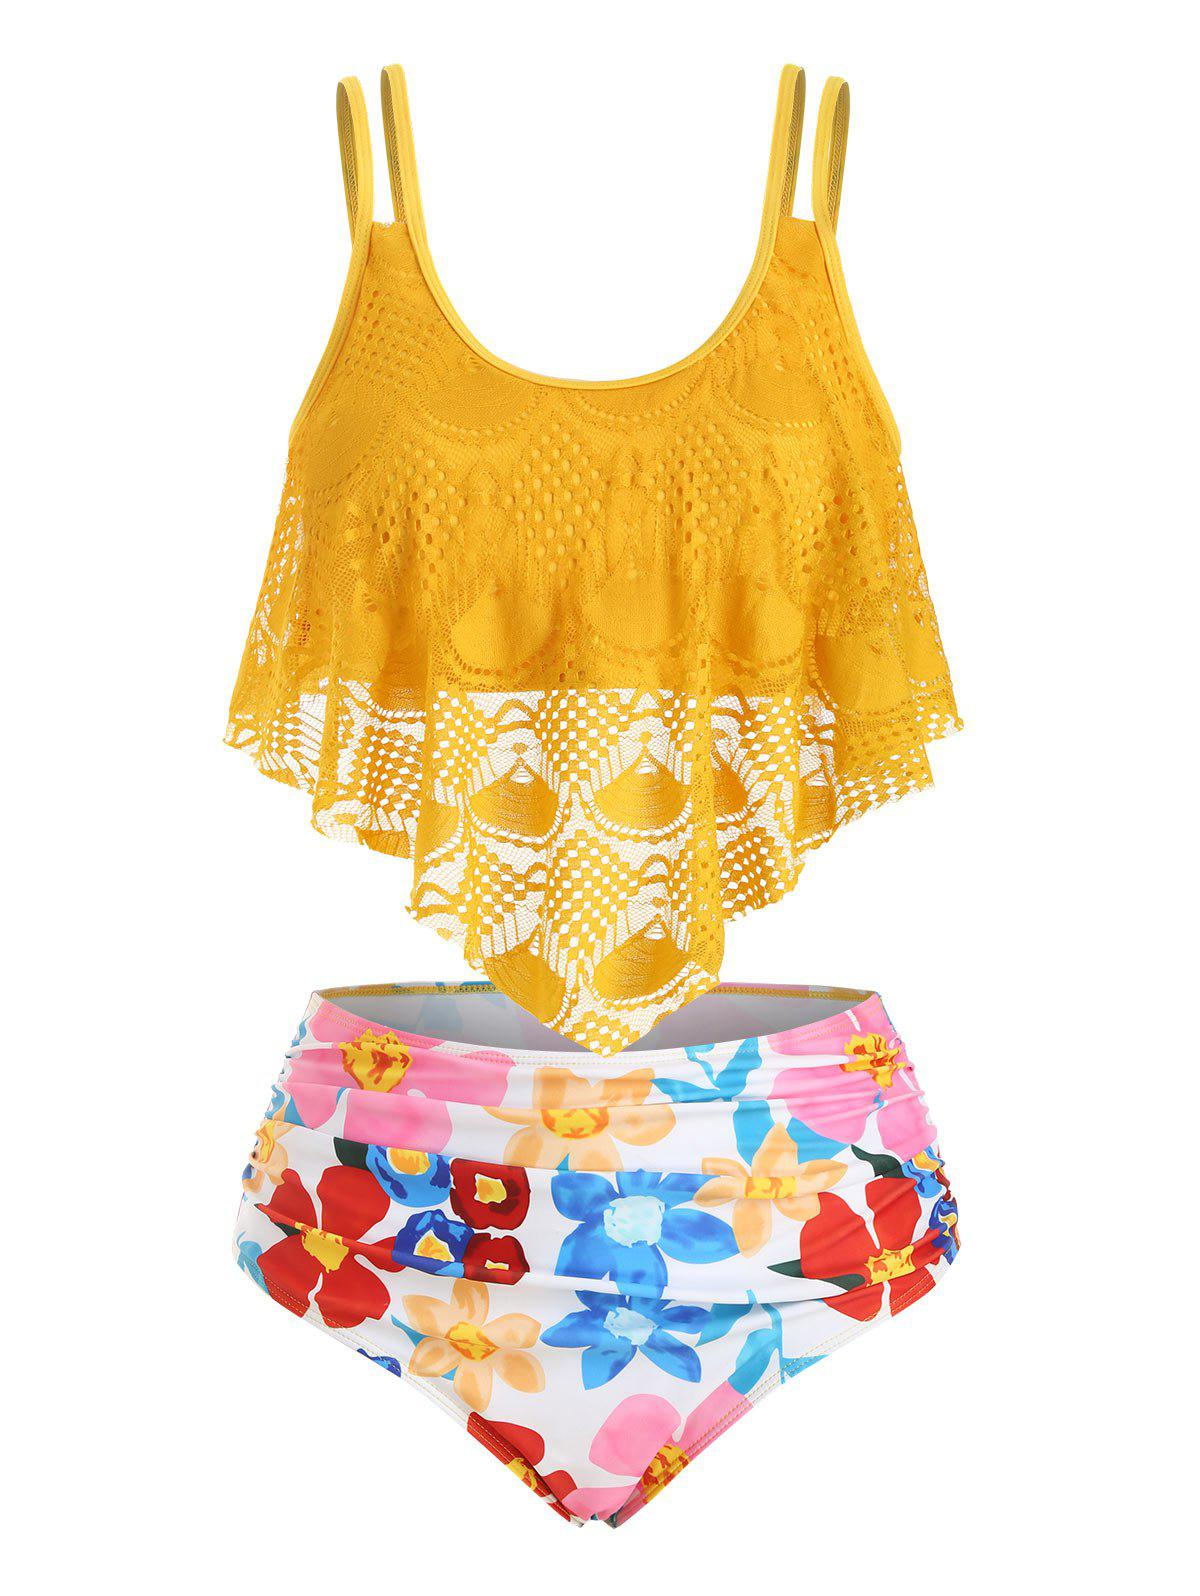 Lace Overlay Flounces Floral Plus Size Tankini Swimsuit - GOLDEN BROWN 3X